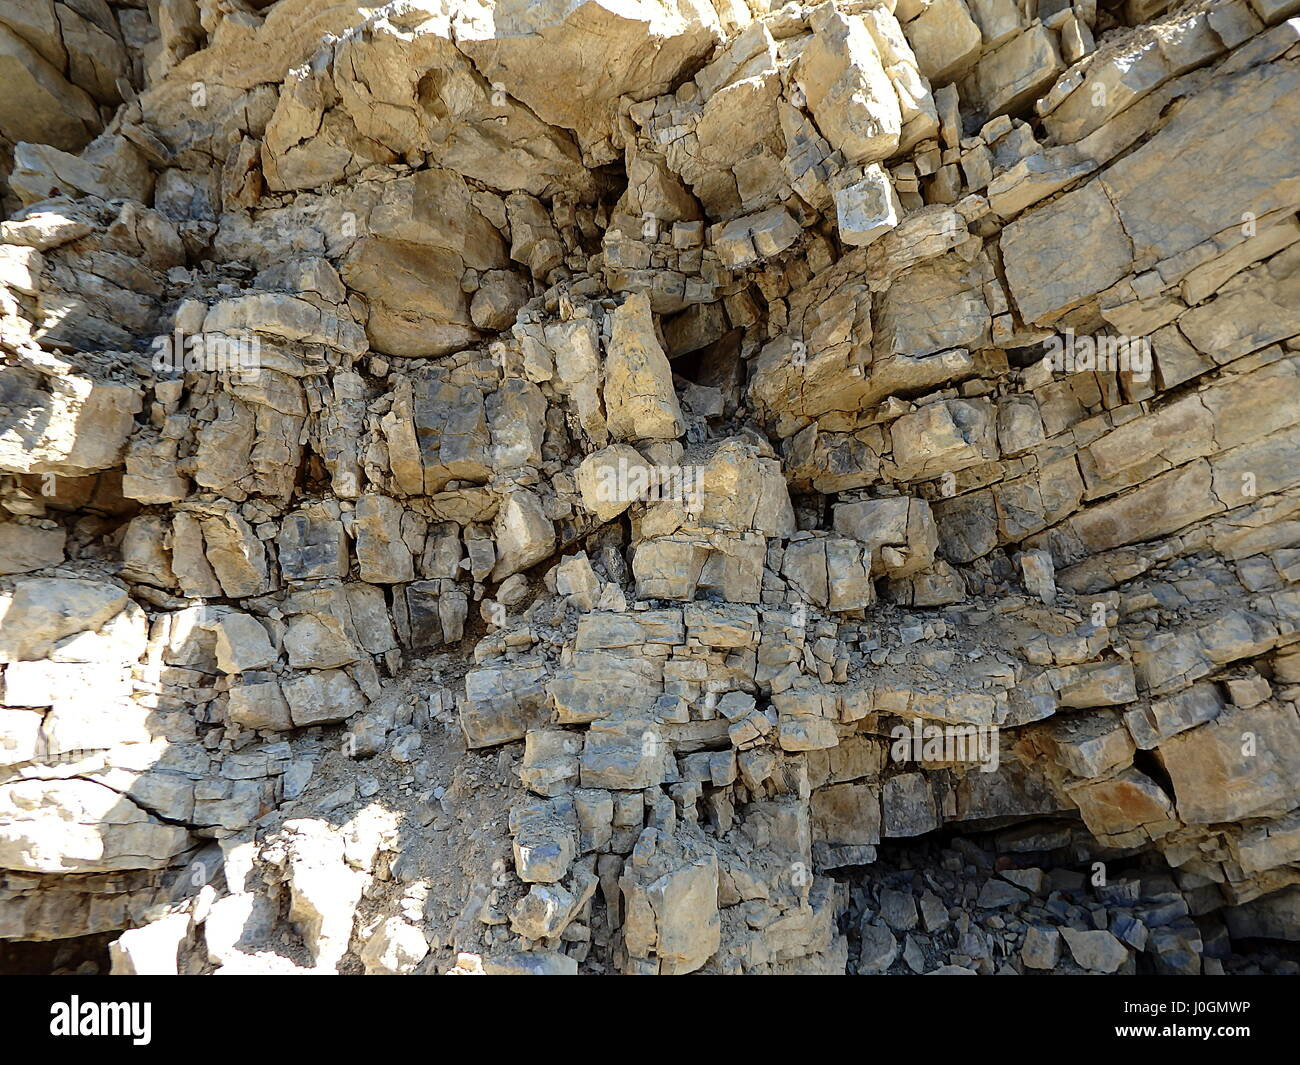 cracked rock natural background, Stone texture closeup background, Stock Photo